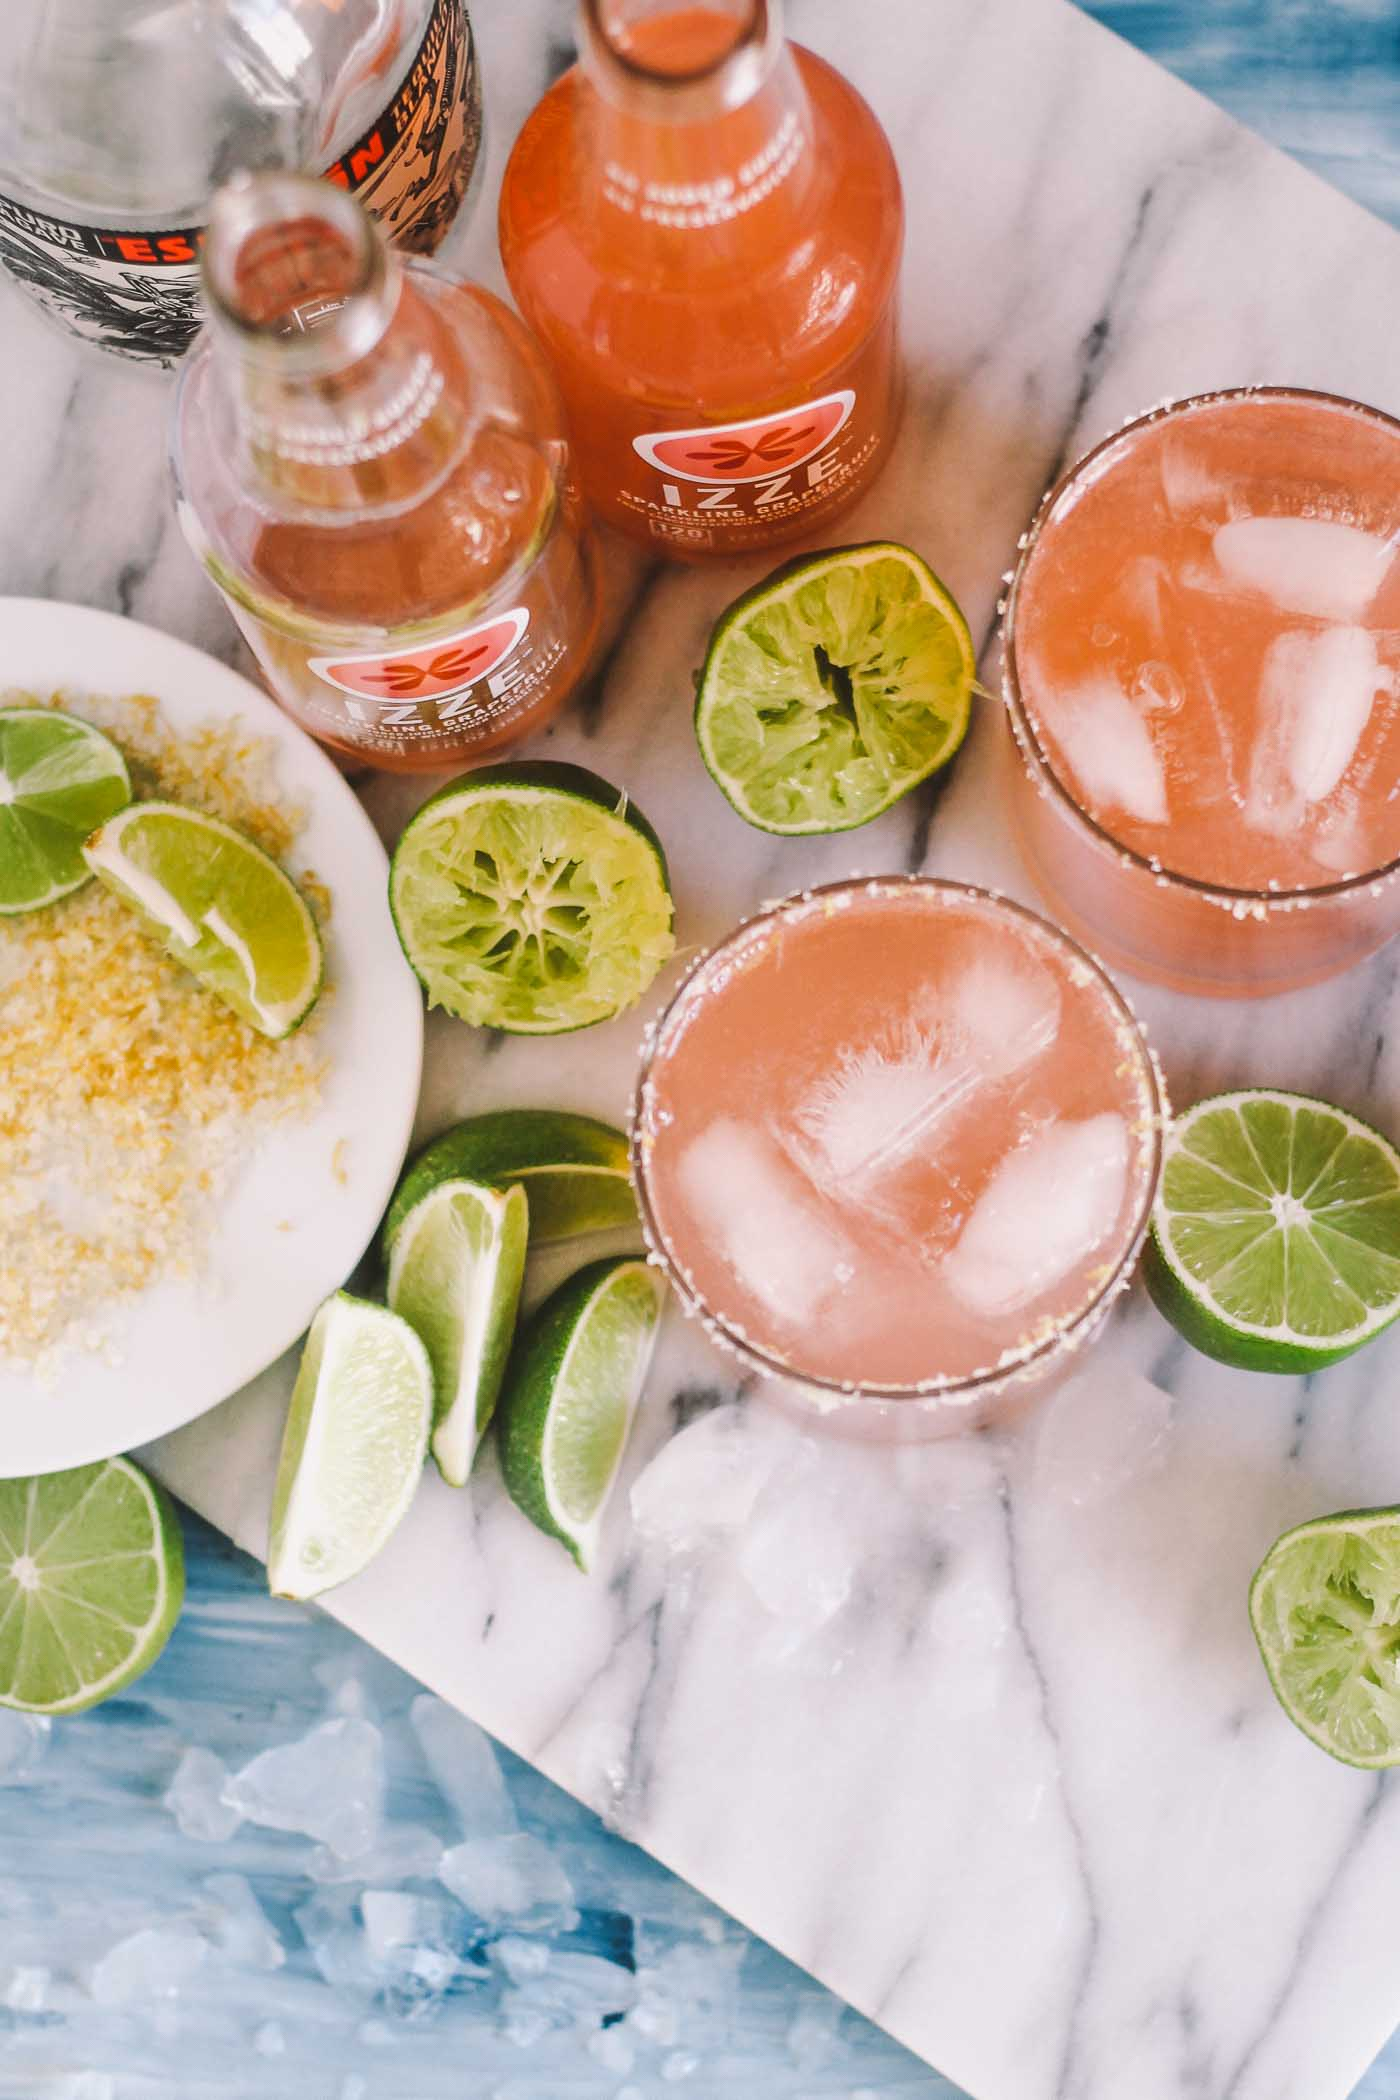 weeknight palomas with three simple ingredients, perfect for when you need a cocktail without frills or fuss. these weeknight palomas are perfect for whenever you'd like to have some girlfriends over on a whim for some laughs (+ chips & guac, of course). plus…cinco de mayo is right around the corner…#justsayin! | cinco de mayo recipe, cocktail recipe, girls night idea, girls night cocktail, paloma recipe, easy cocktail, tequila |